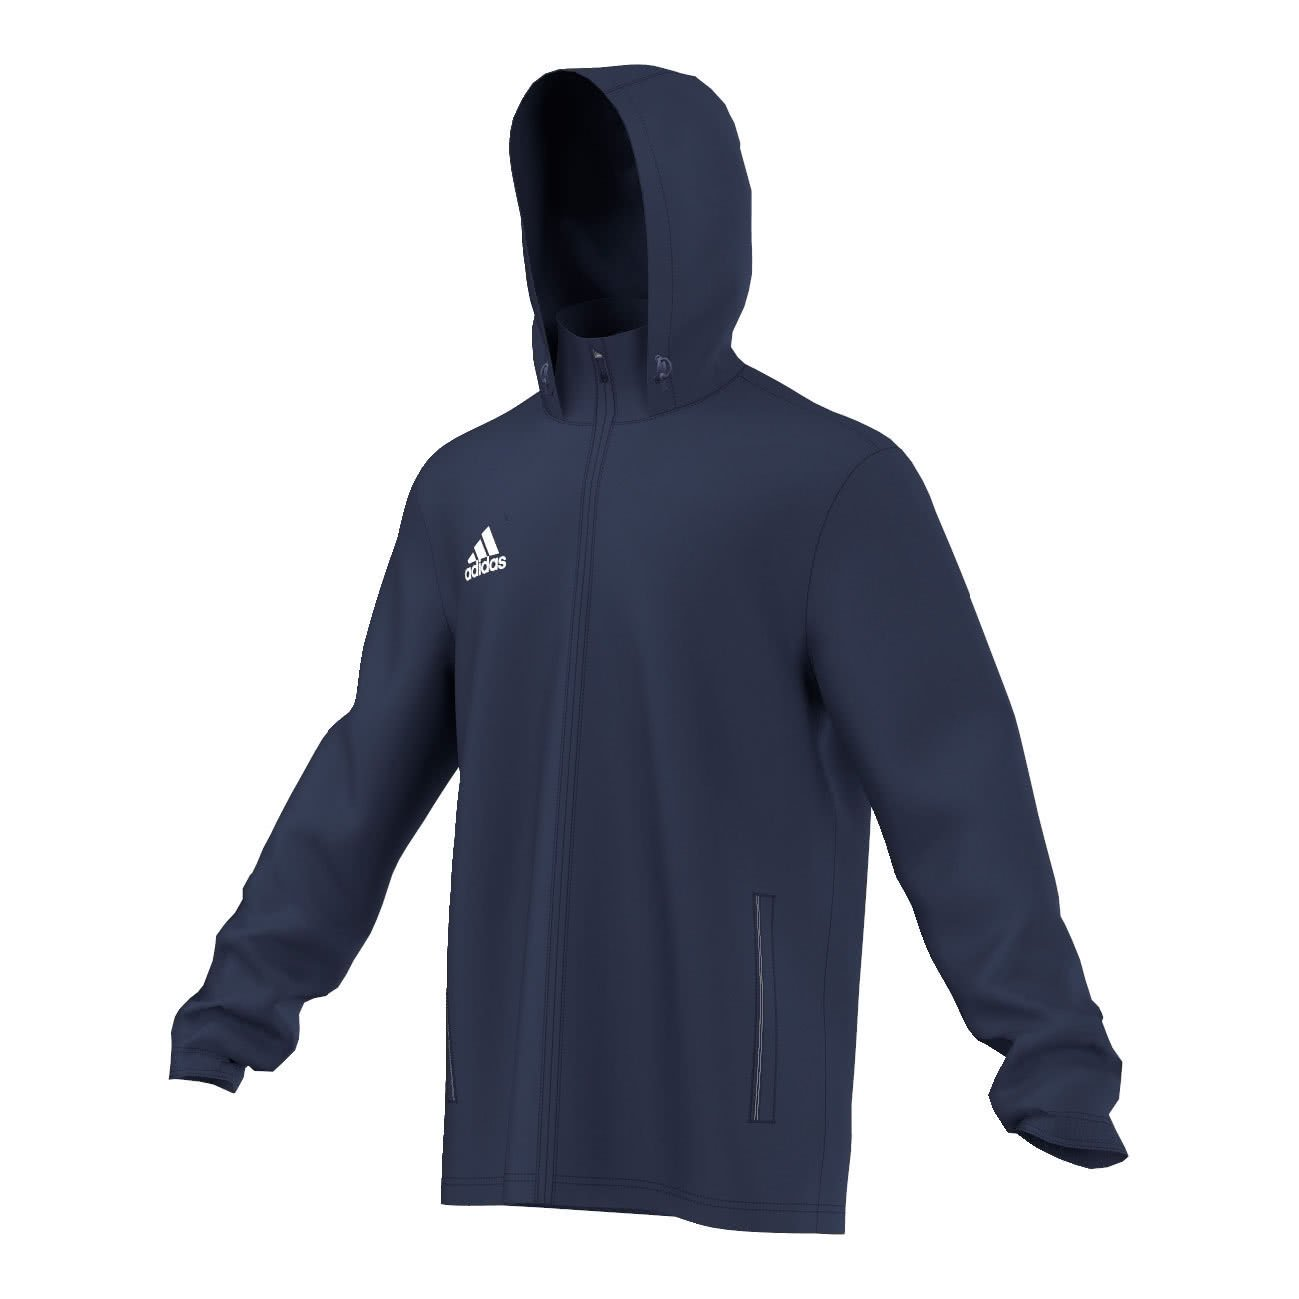 adidas children's casual wear rain jacket, Children's, Jacke/Anoraks Coref rai jkty Children's ADIEY|#adidas S2228